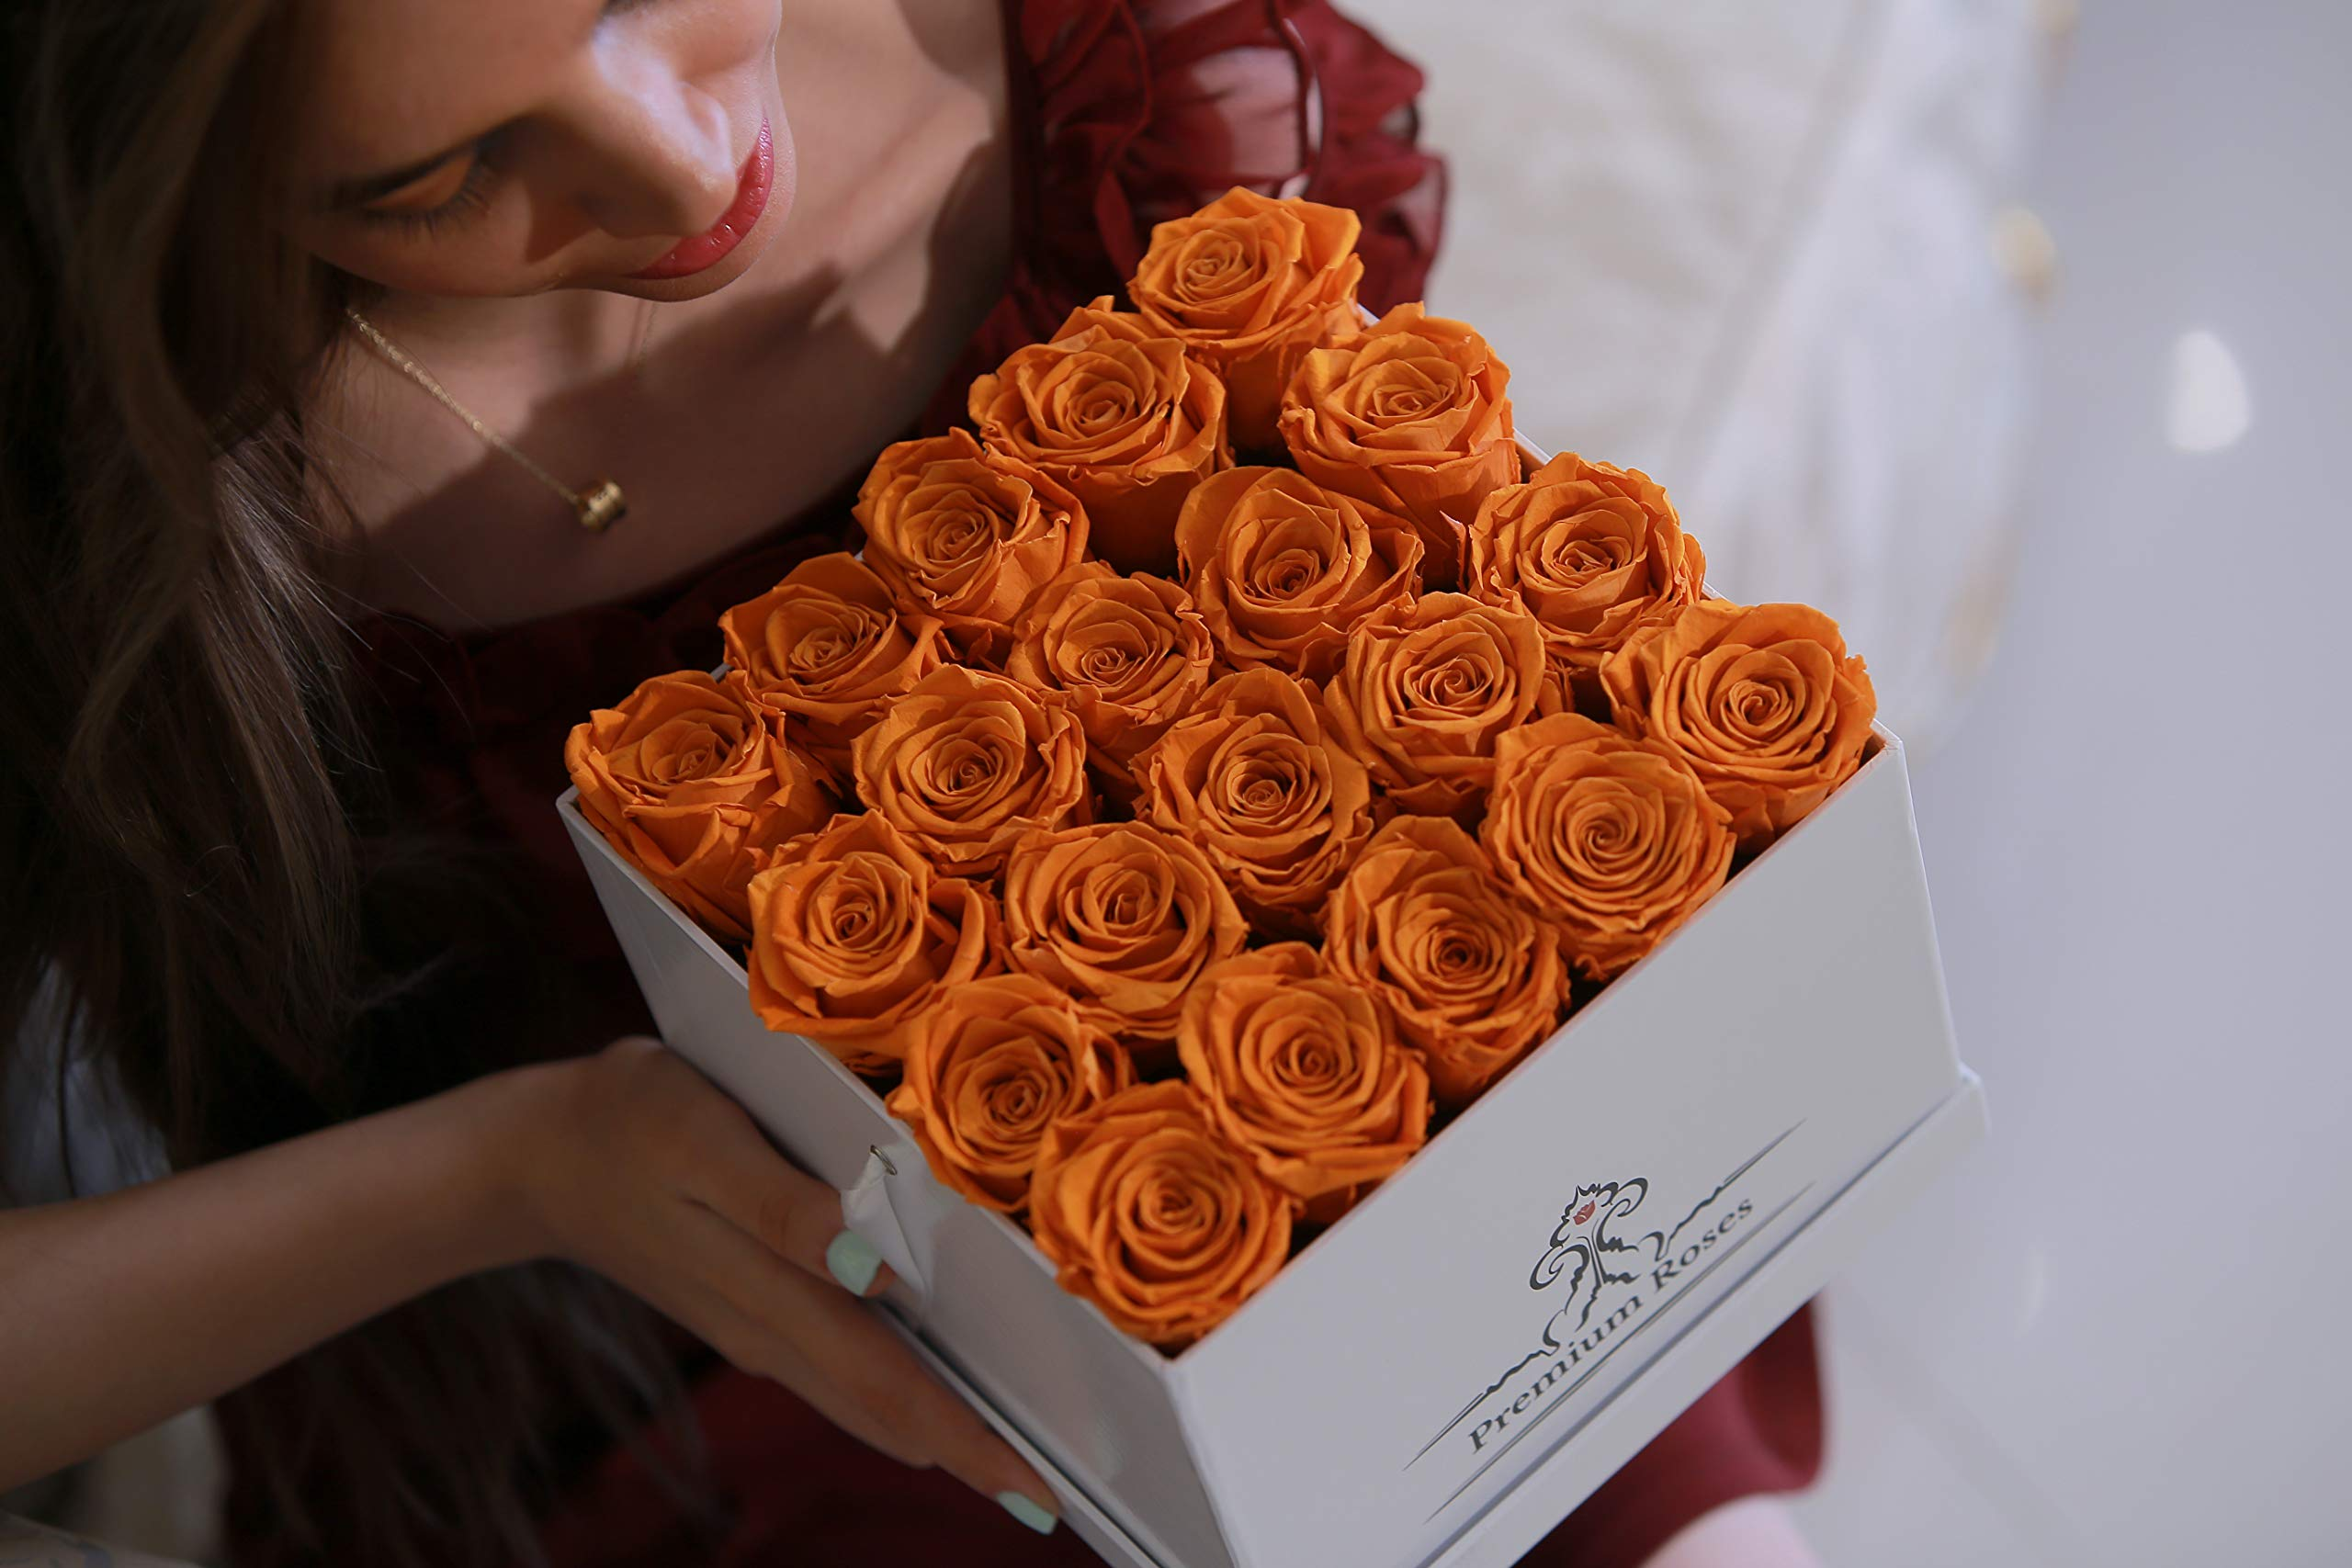 Premium Roses | Model Glossy| Real Roses That Last 365 Days | Fresh Flowers| Special Occasion, Holiday, Birthday Gift (Glossy White Box, Medium) by Premium Roses (Image #2)